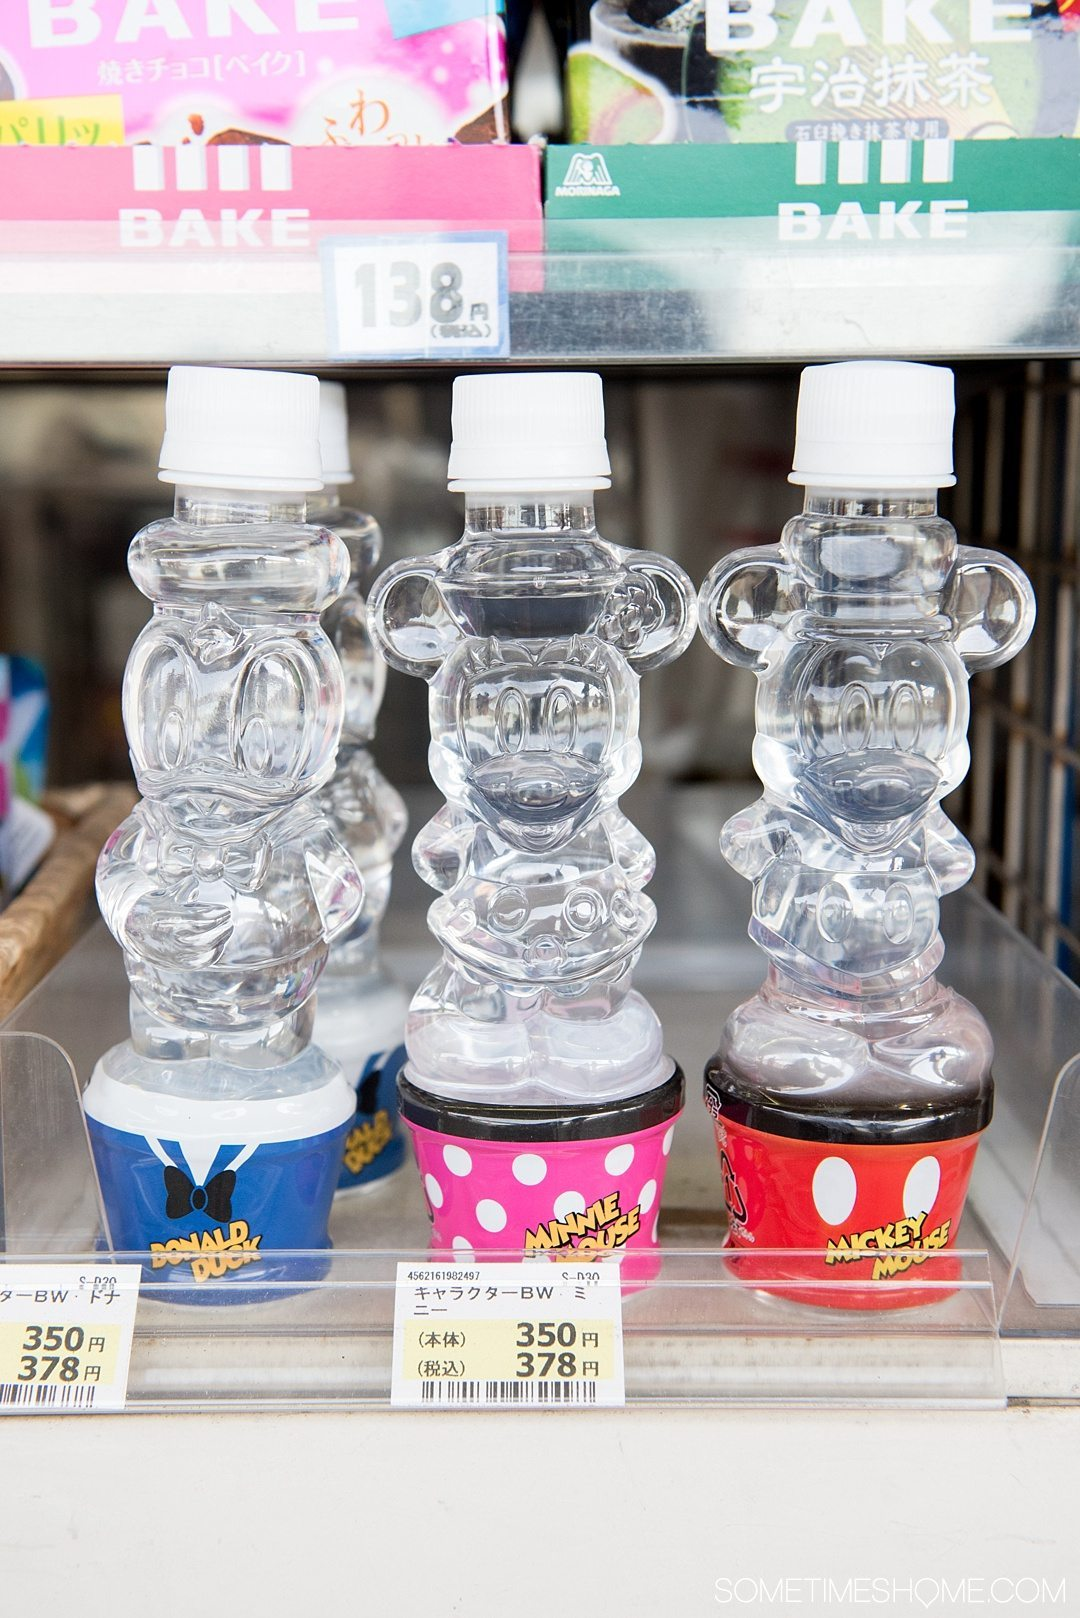 The Ultimate First-Timer's Guide to Tokyo DisneySea on Sometimes Home travel blog. Photo of Disney character shaped water bottles at a concession stand on the JR Maihama line station platform.